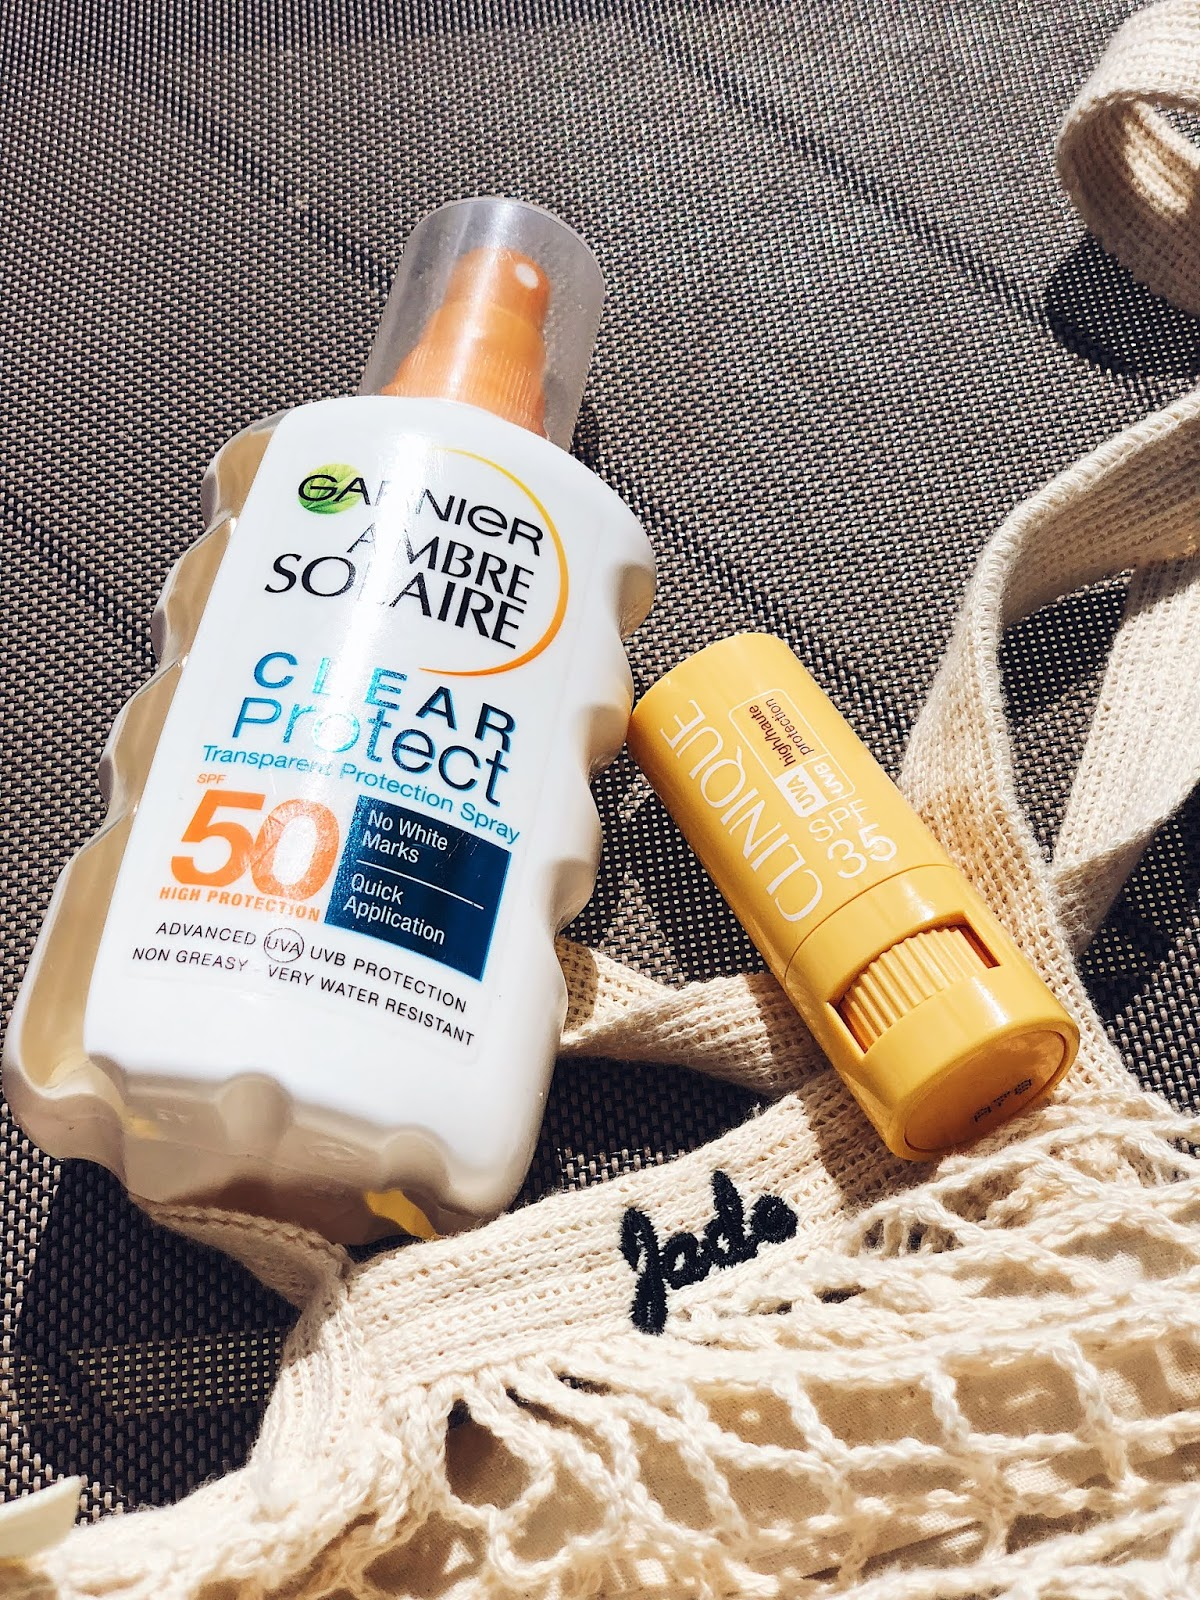 best garnier suncream, best factor 50 suncream, clinique spf, clinique suncream review, clinique spf stick review, dermalogica prisma protect review, dermalogica spf product review, favourite suncare, suncare review